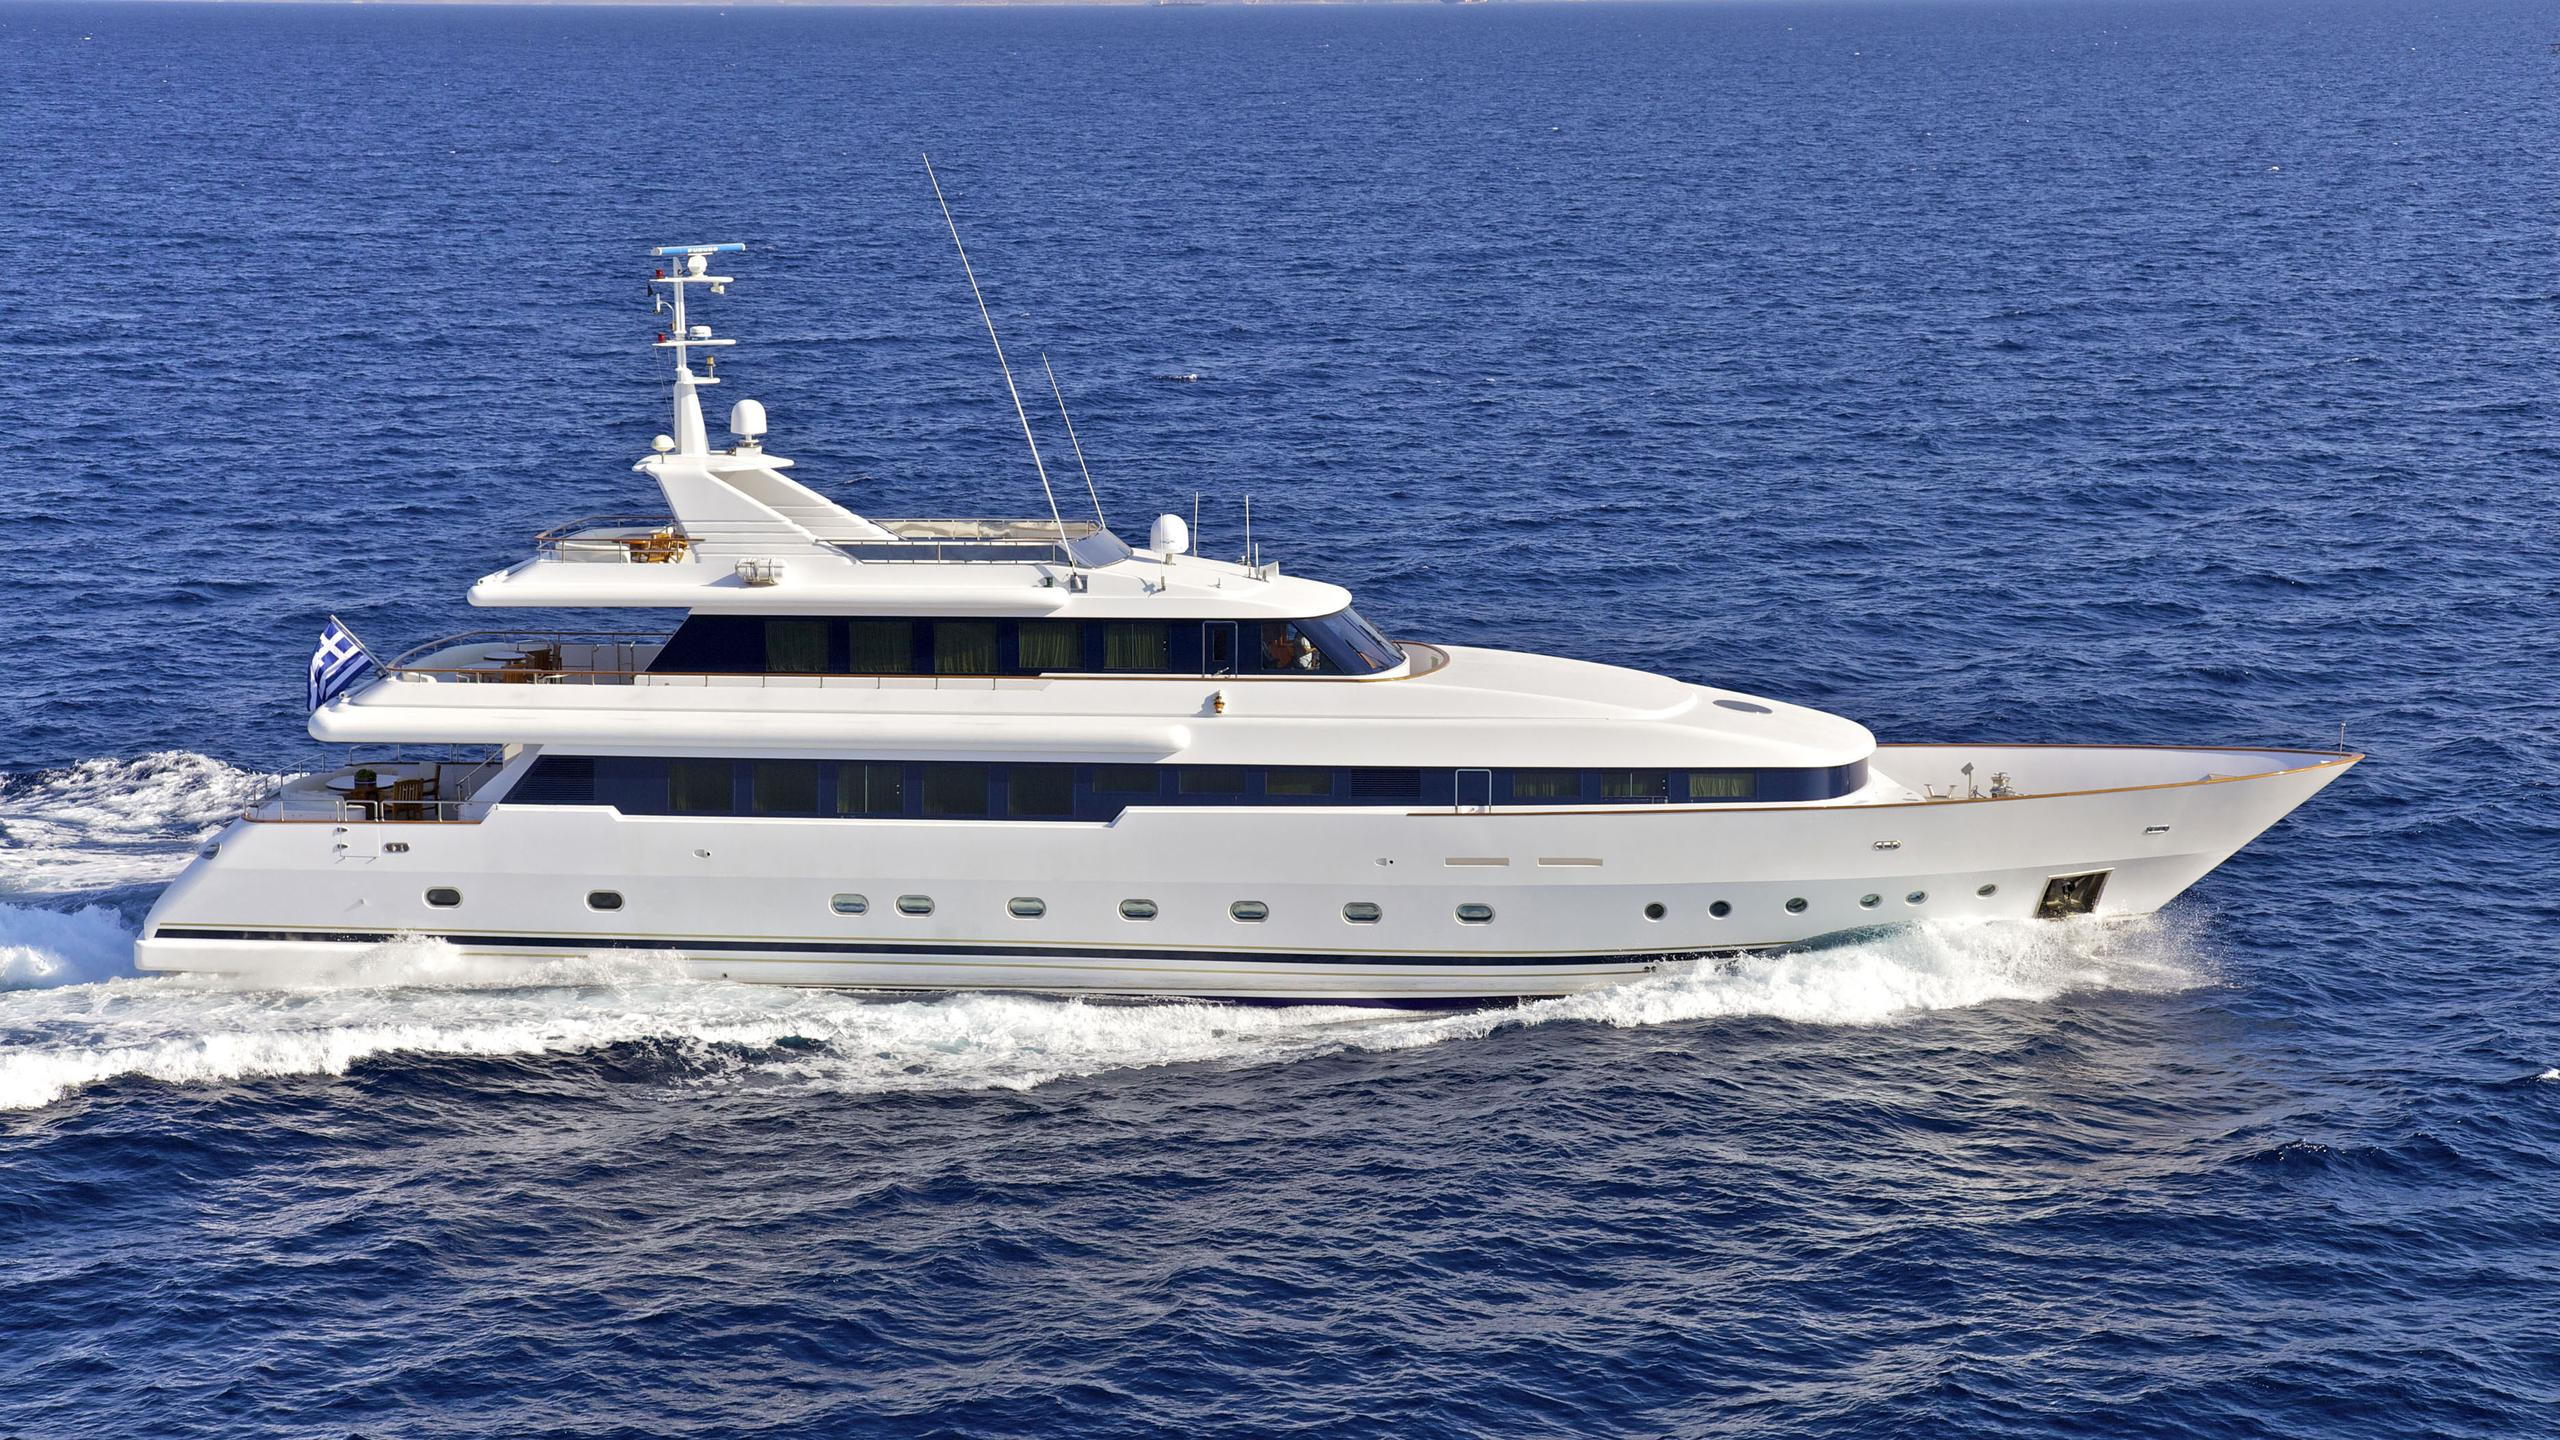 orion-yacht-for-charter-profile